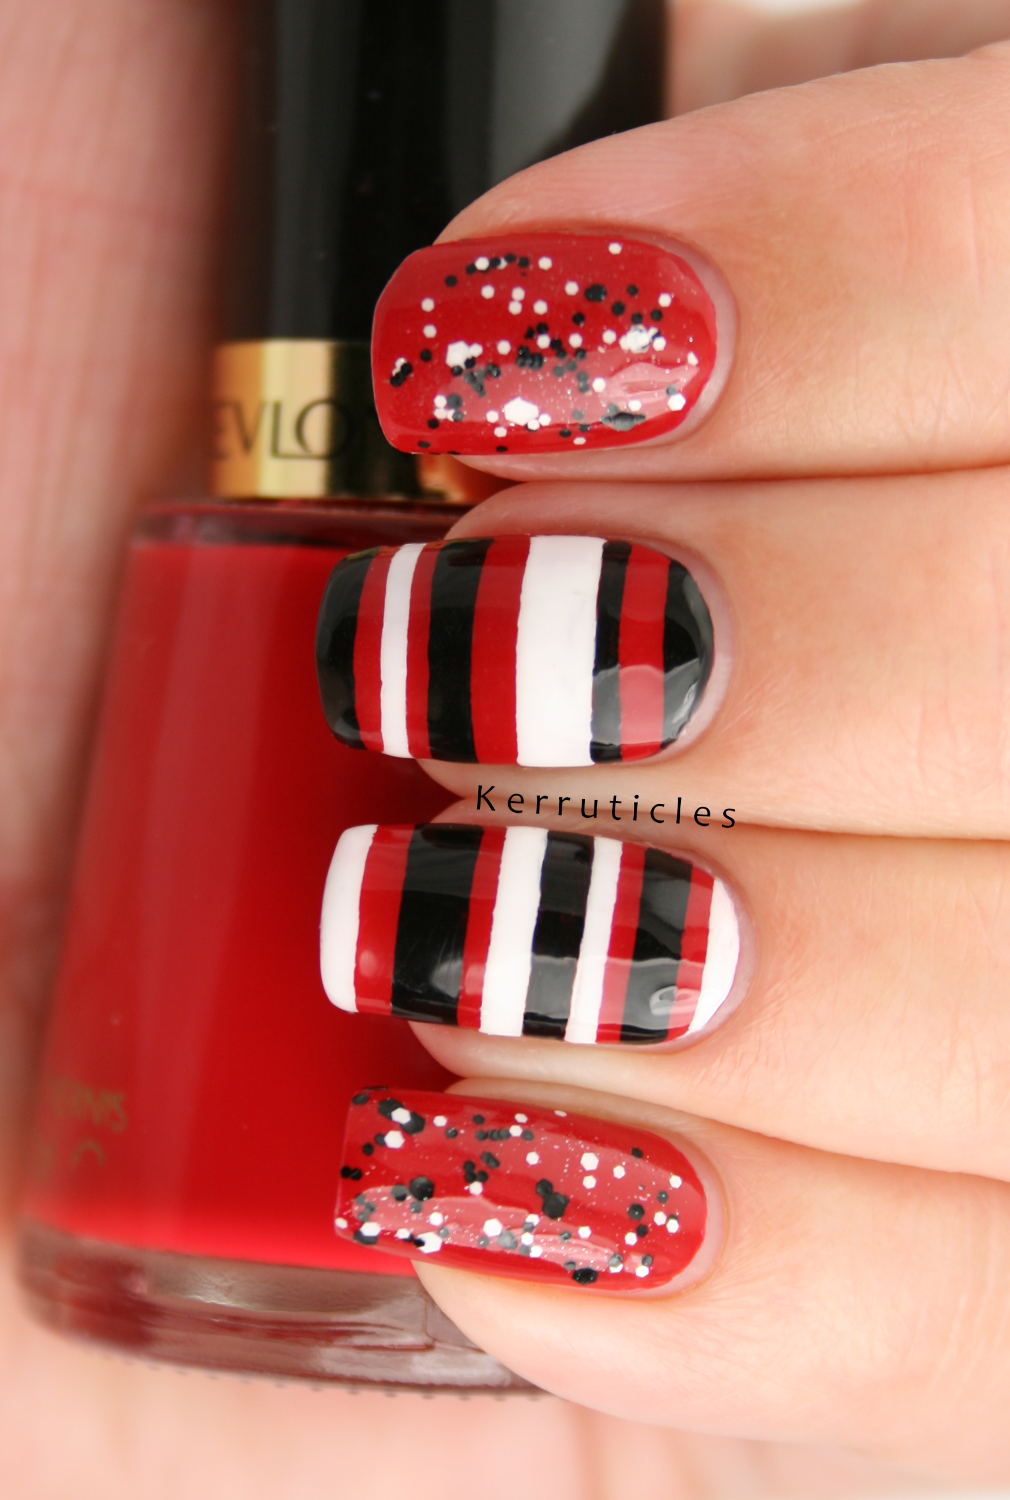 Red, black and white: stripes and glitter | Kerruticles